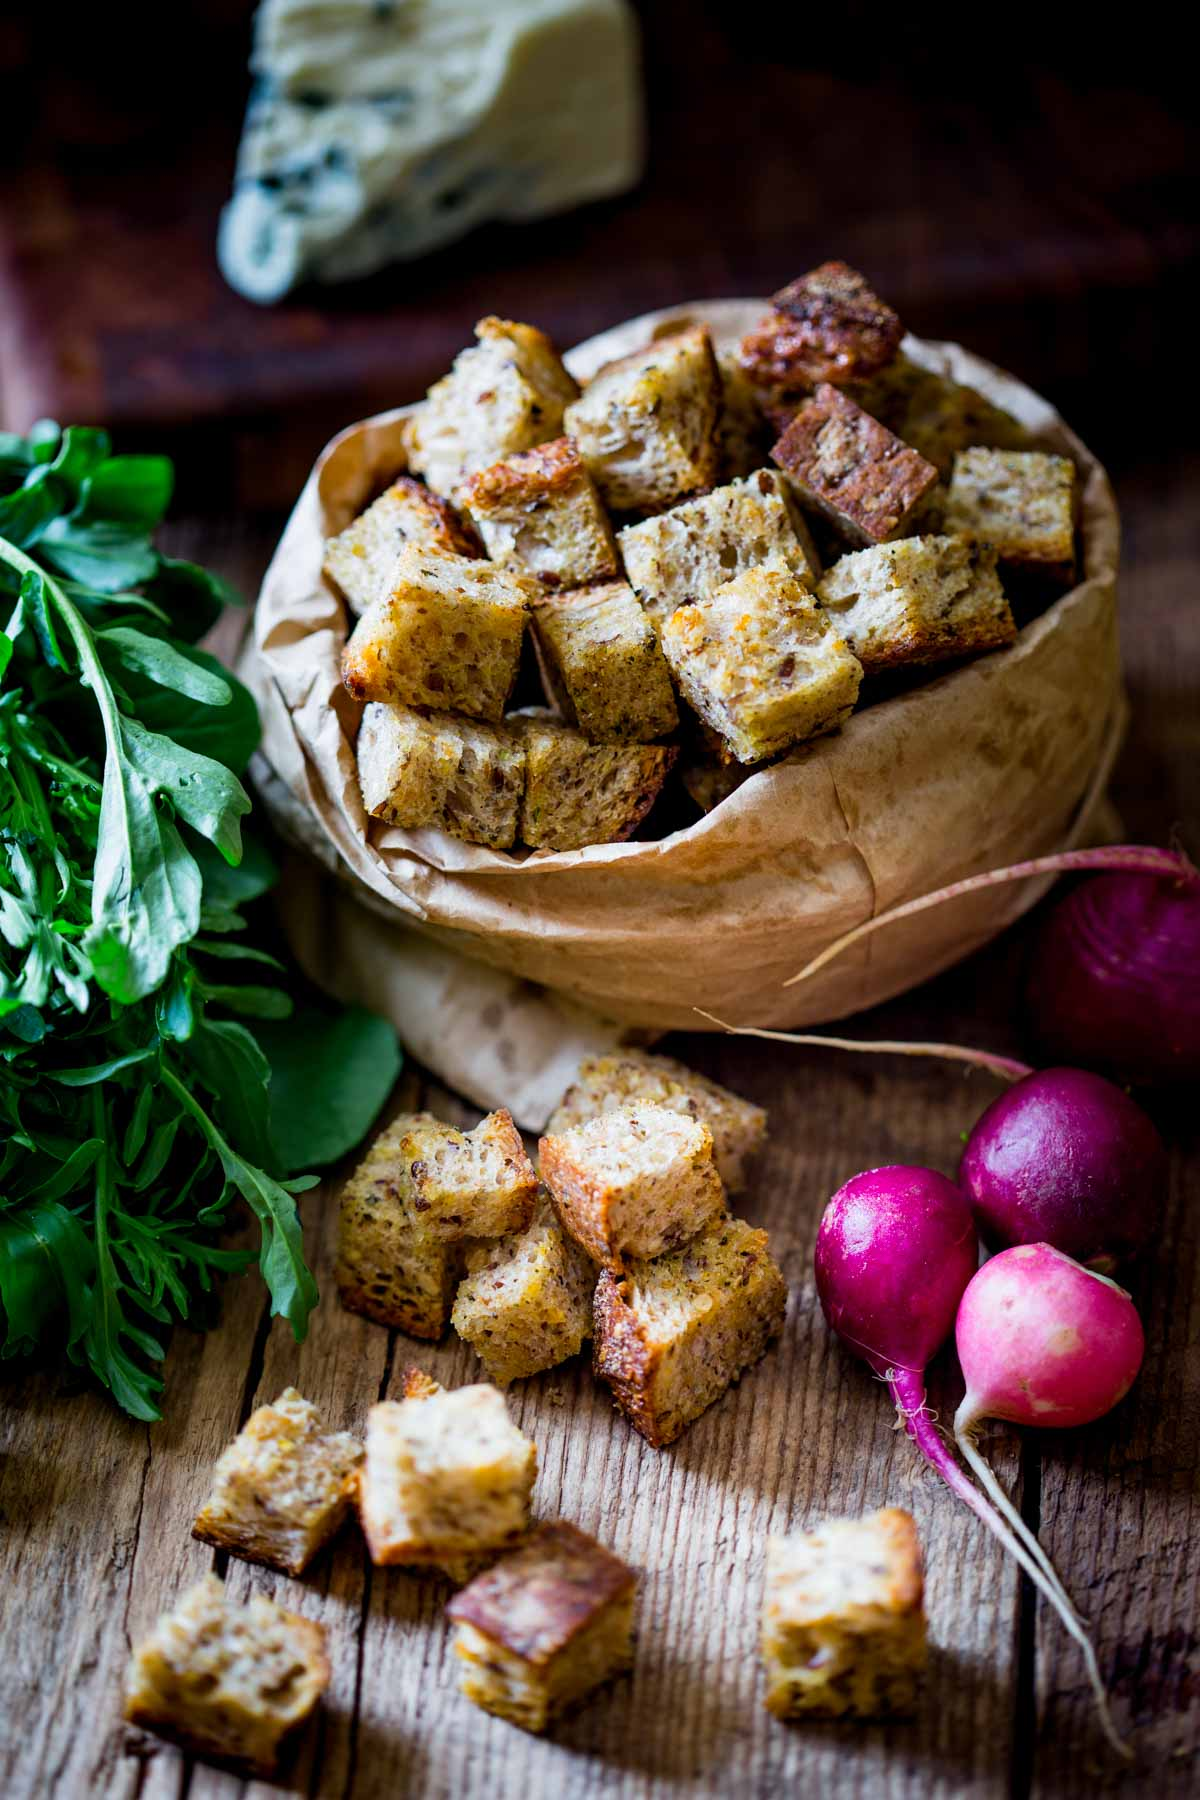 a bag of croutons with salad ingredients